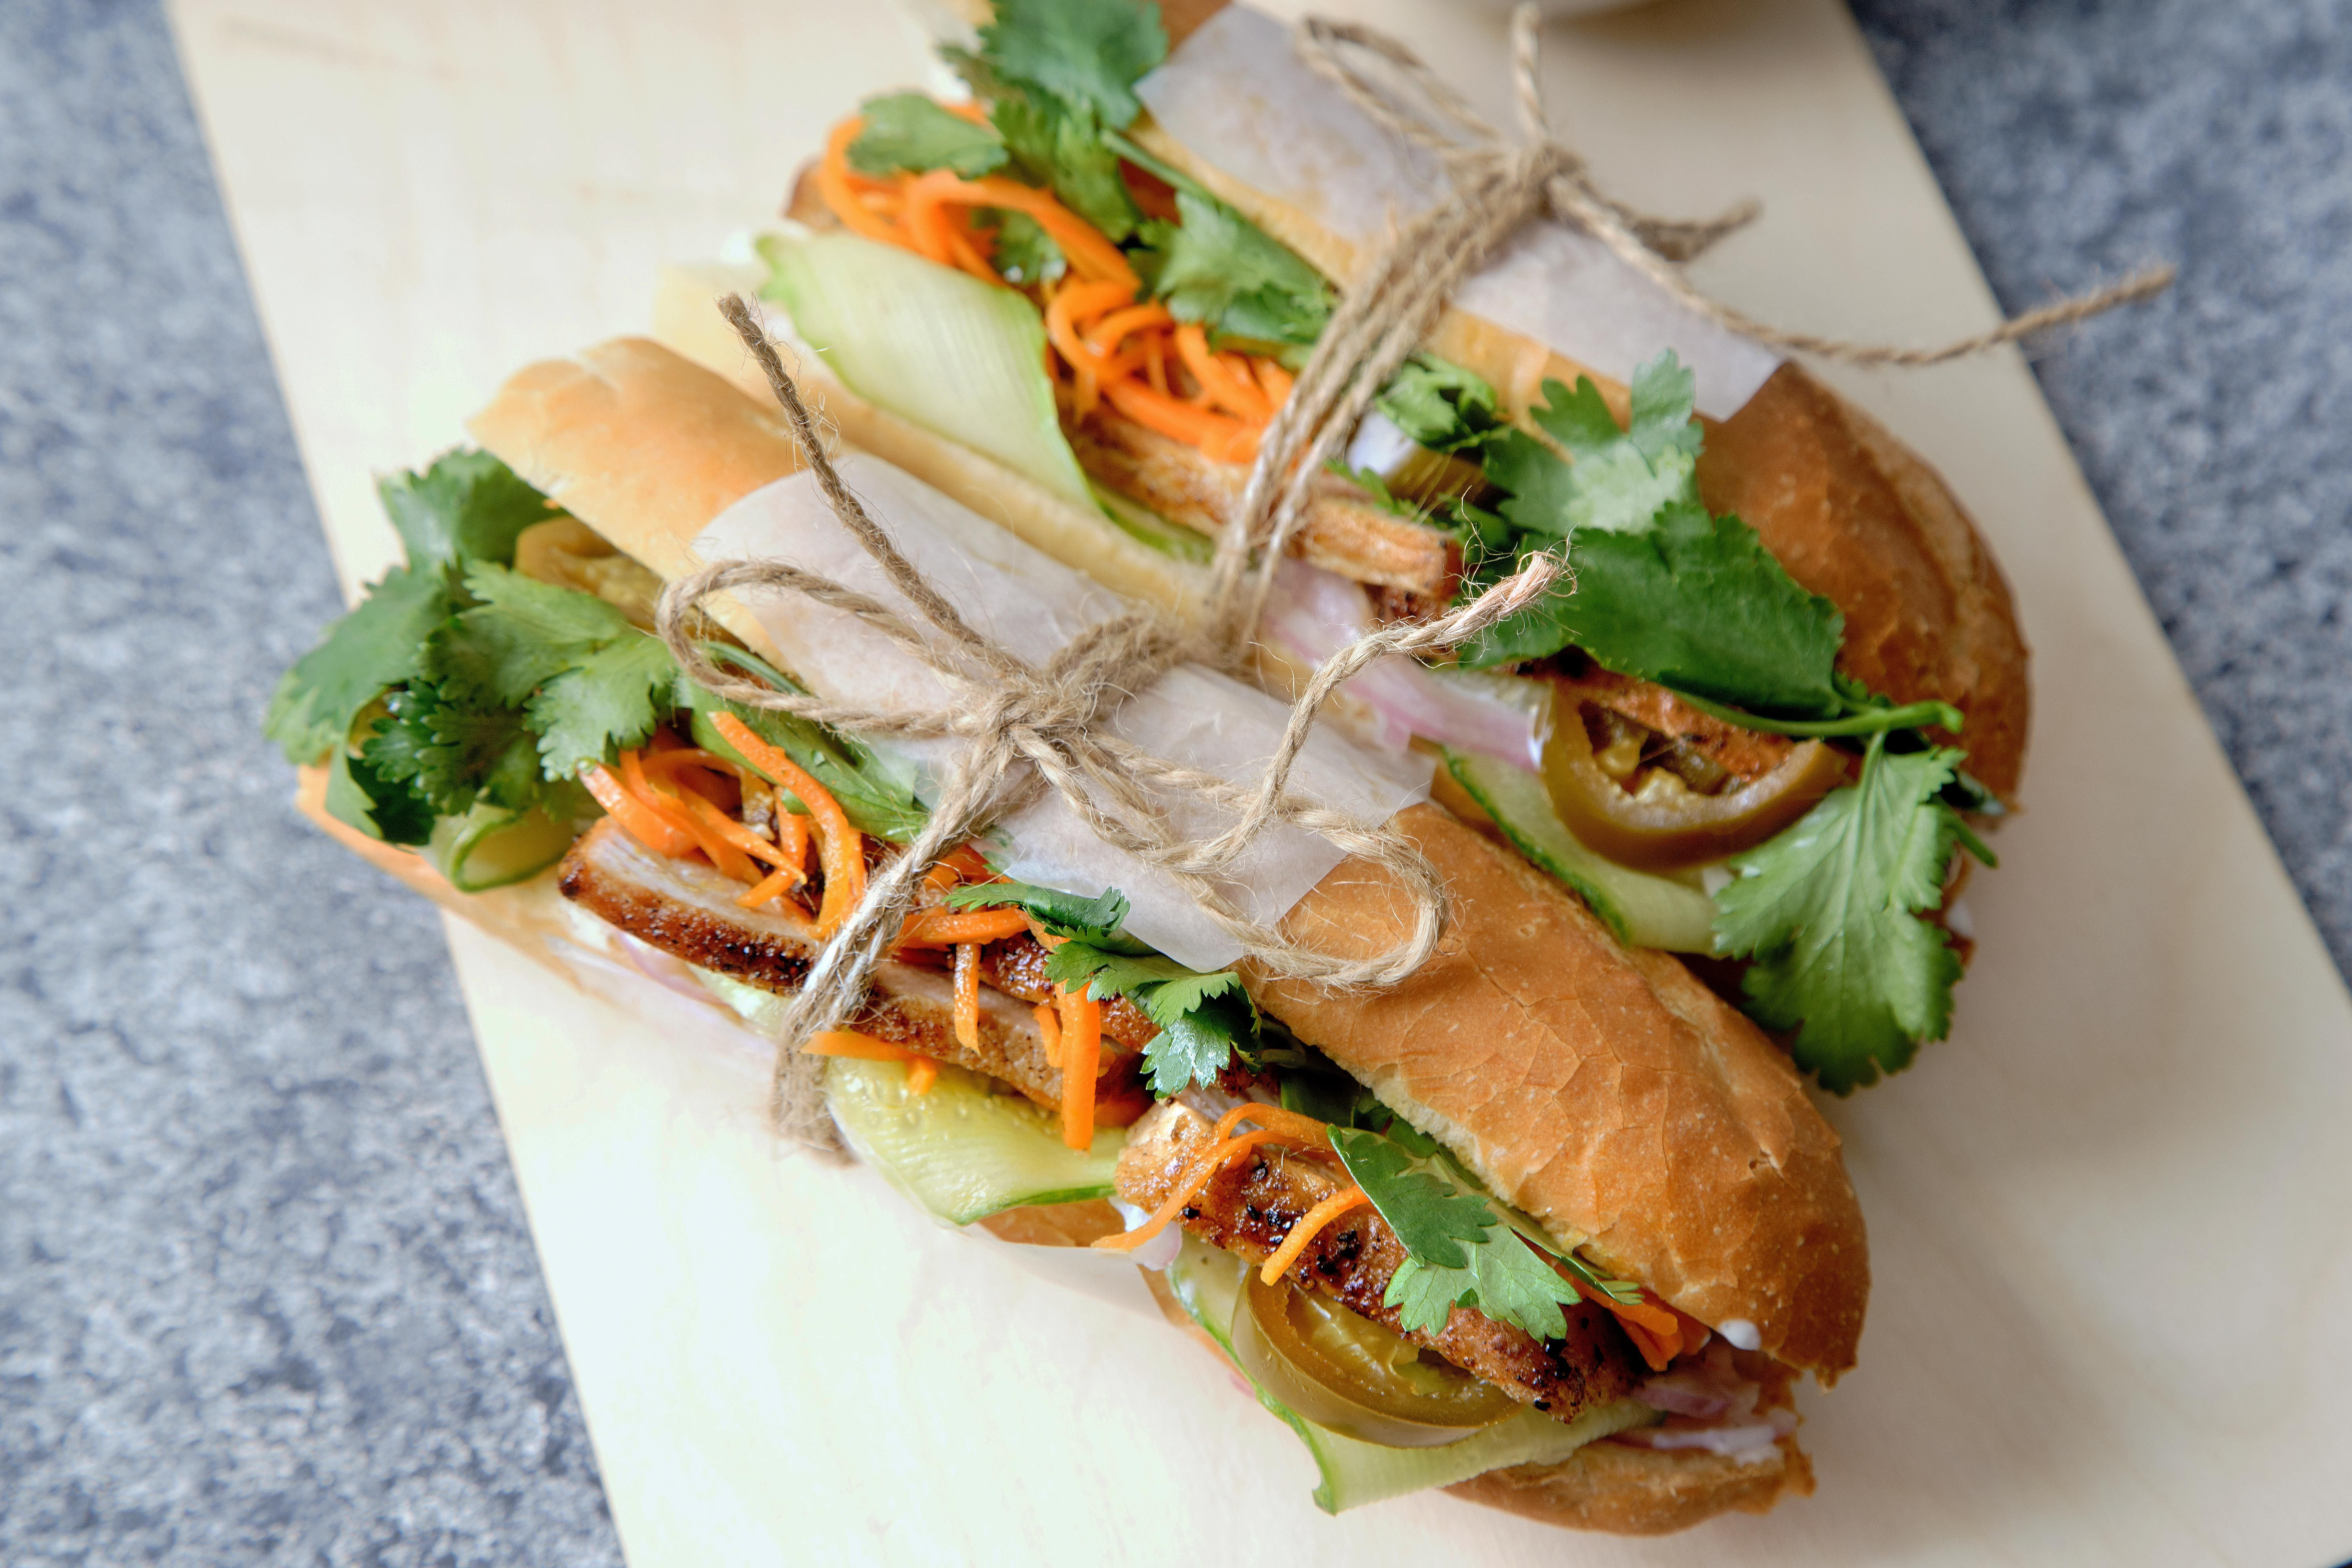 sub sandwich with sliced grilled pork tenderloin, tied with twine